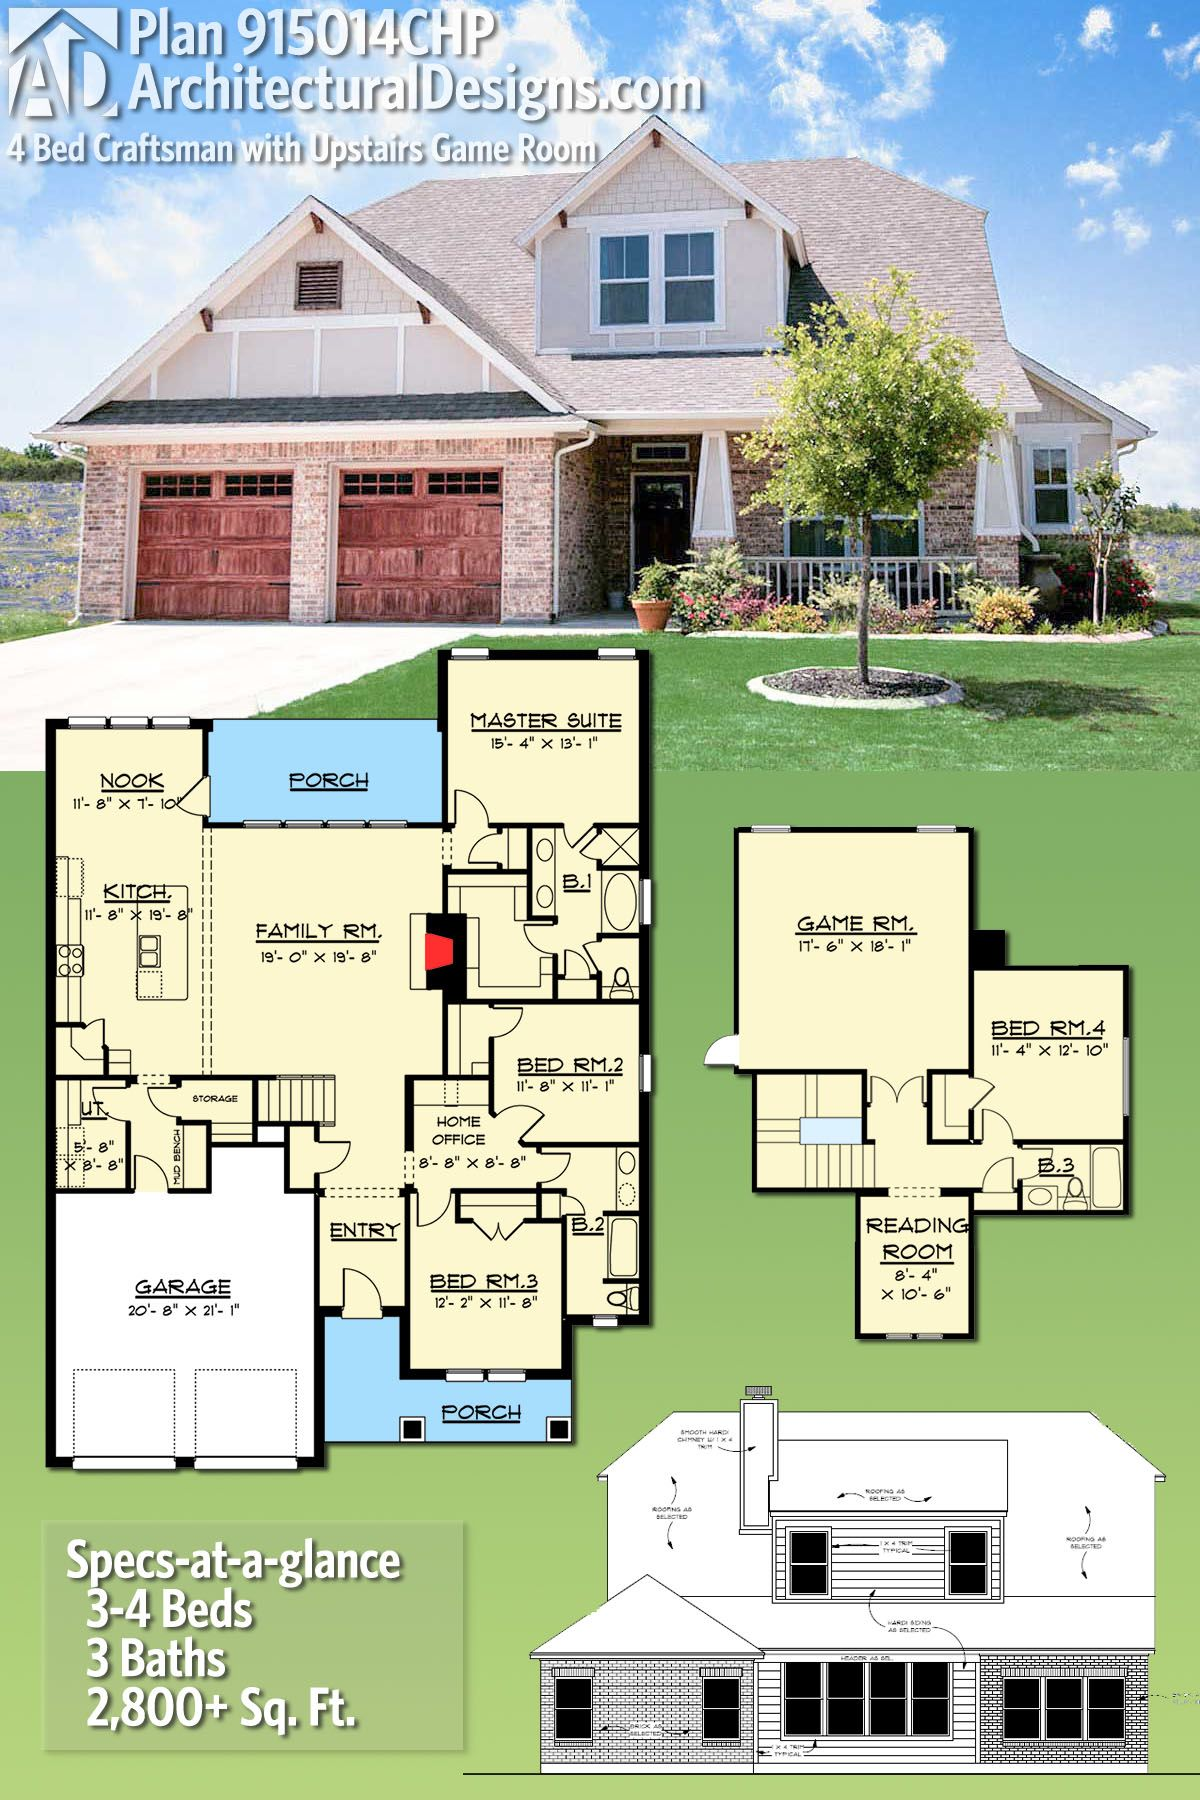 Plan 915014chp 4 Bed Craftsman With Upstairs Game Room Craftsman House Plans House Blueprints Dream House Plans